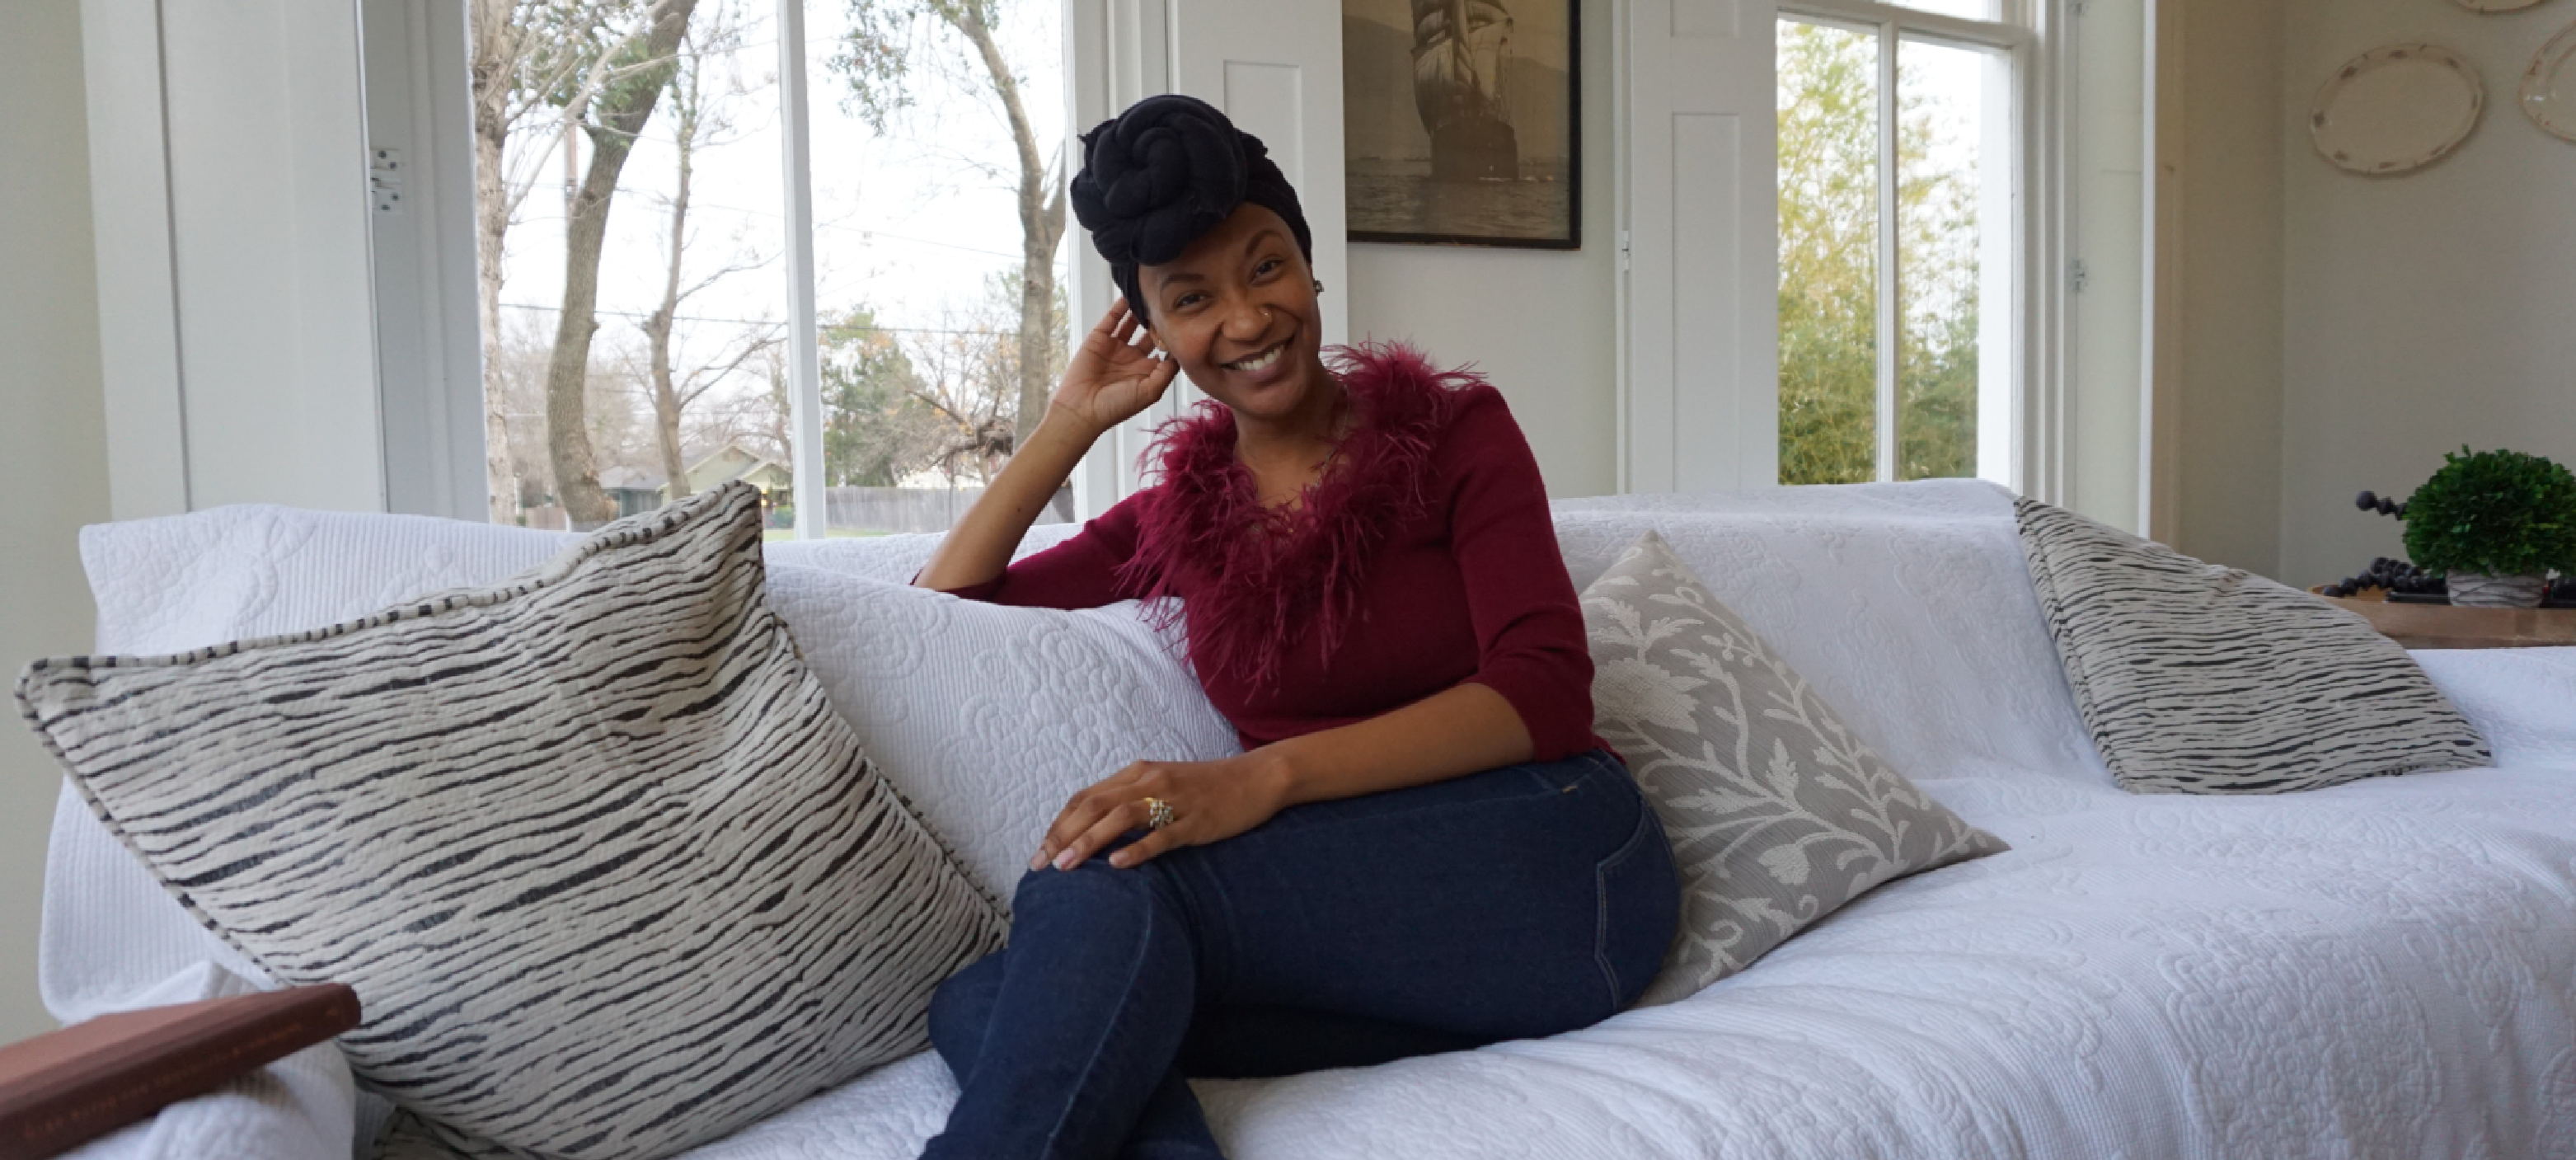 burgundy thrift outfit - secondhand first